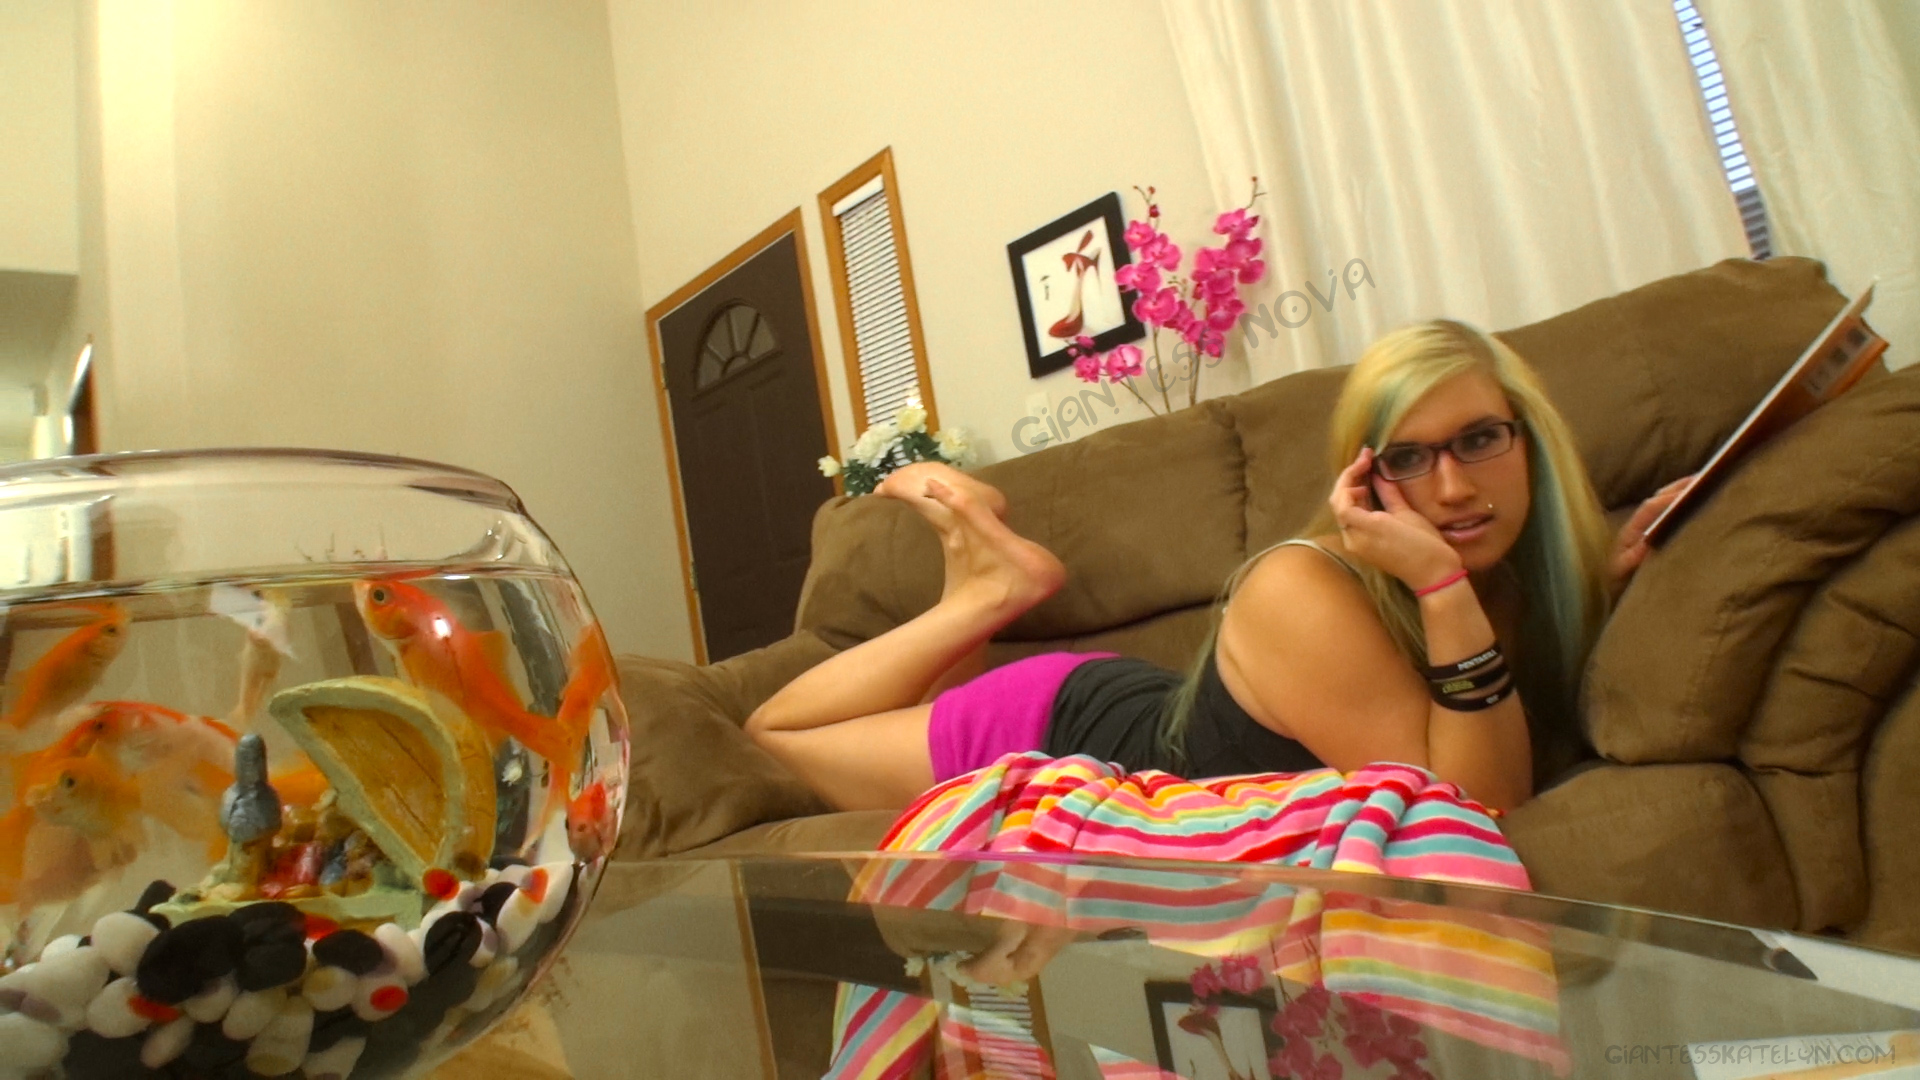 Vore scat giantess naked clip